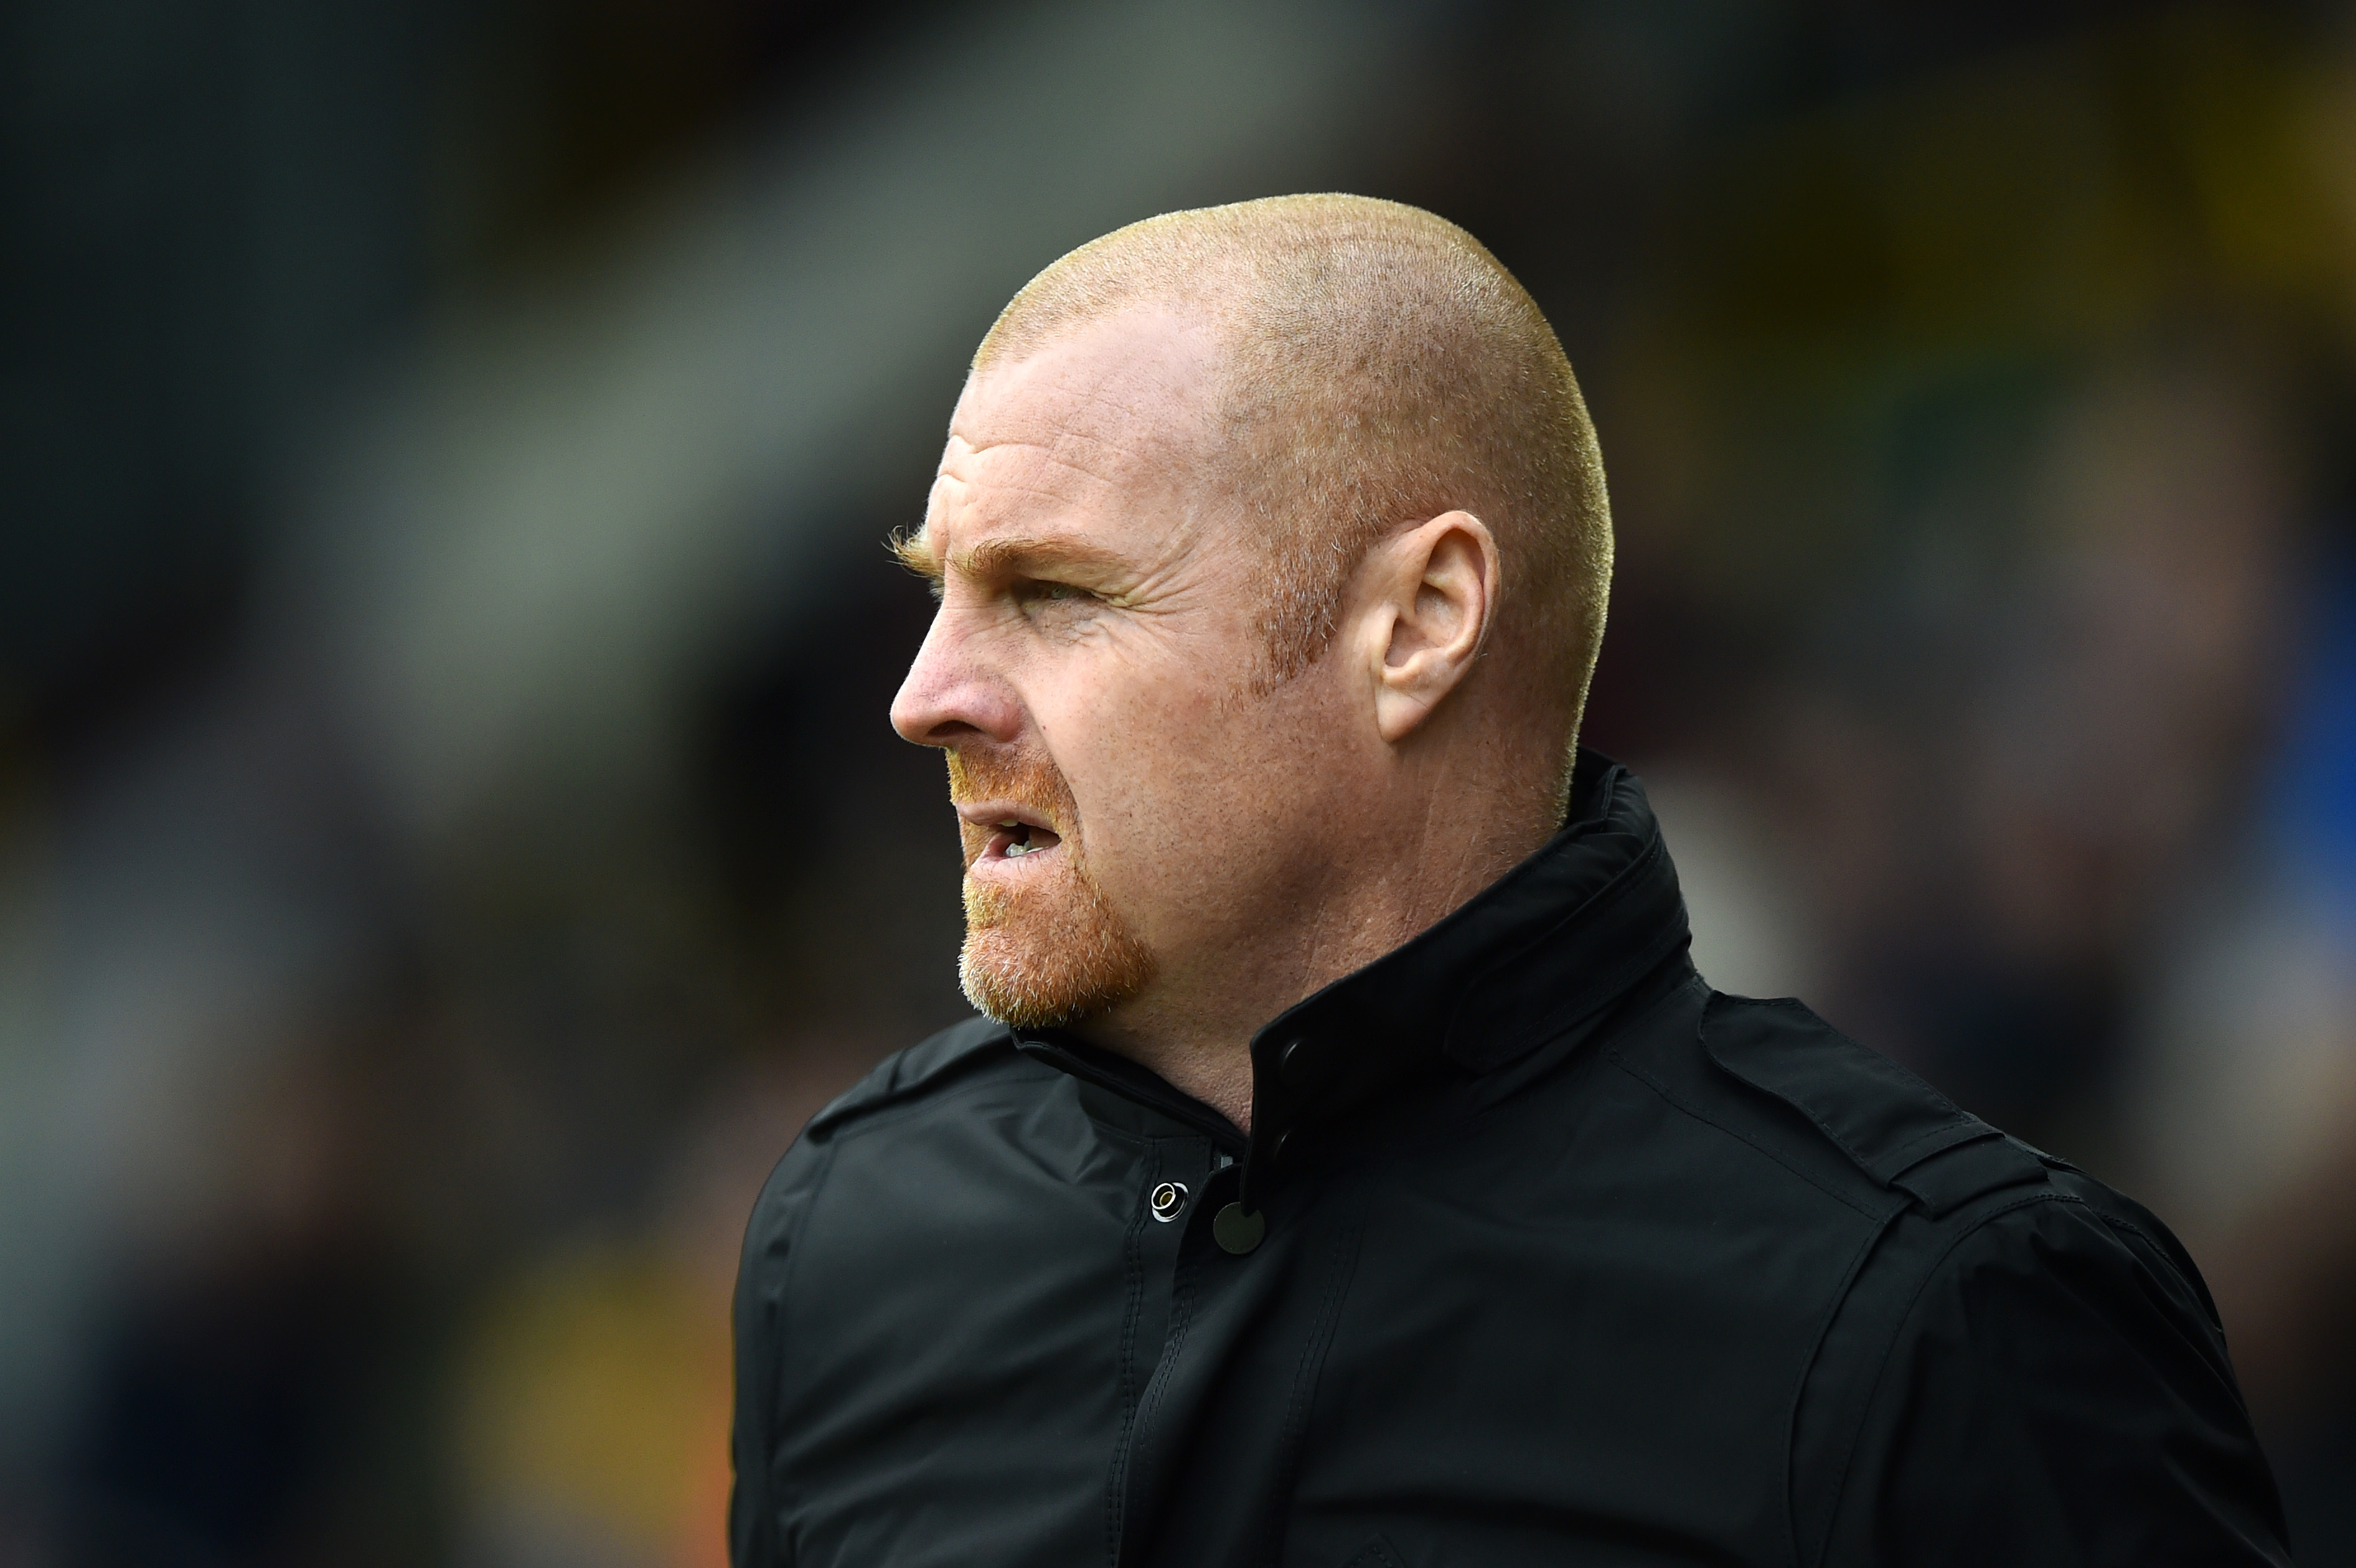 Sean Dyche still looking for the first league win of the season (Picture Courtesy - AFP/Getty Images)